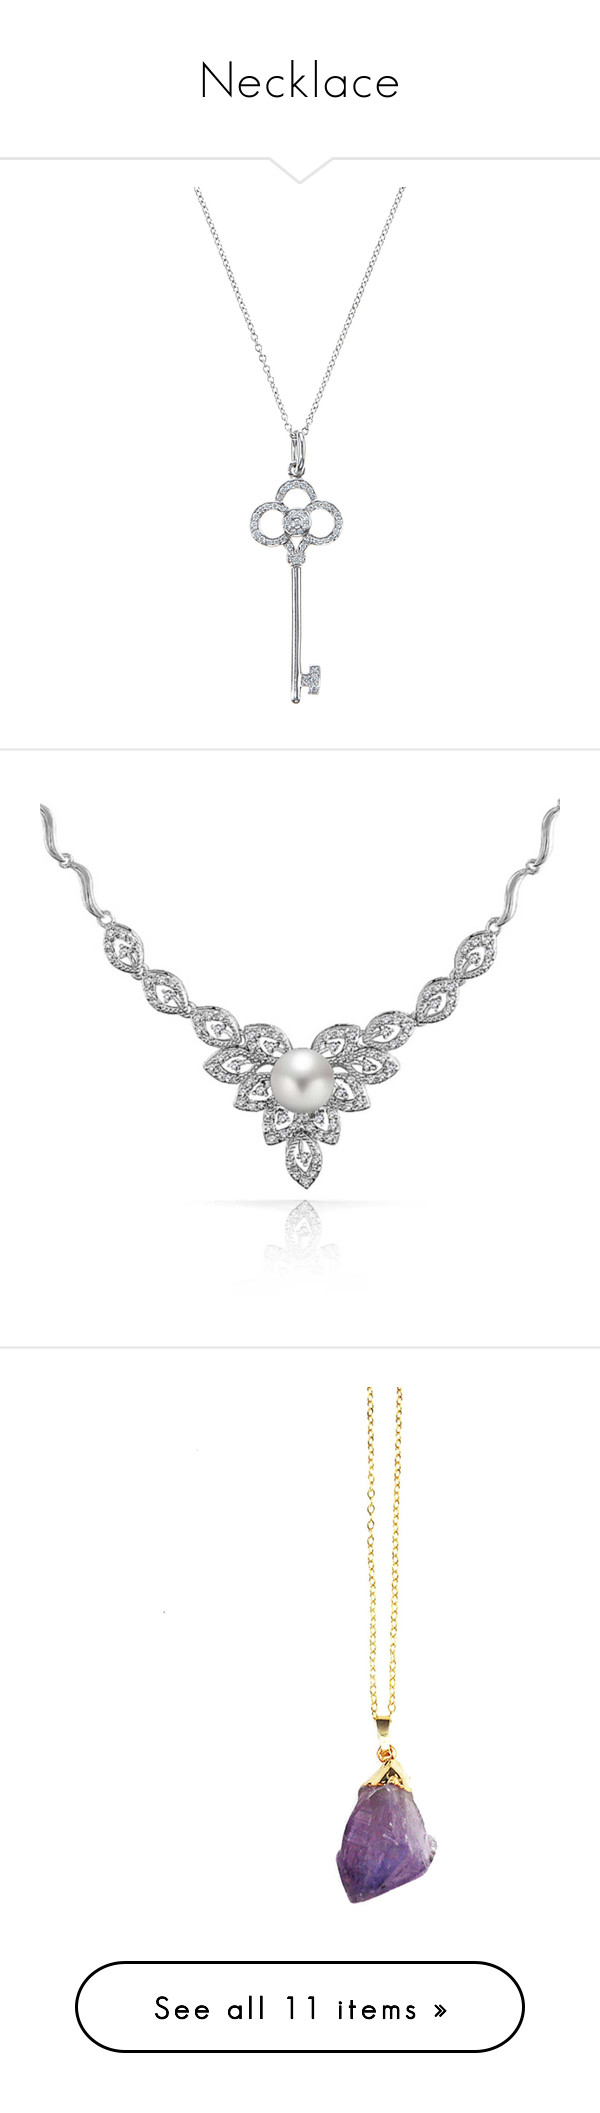 """""""Necklace"""" by badglitz ❤ liked on Polyvore featuring Jaeger, Alexandre Birman, Sensi Studio, jewelry, necklaces, accessories, silver, long diamond necklace, vintage jewelry and long necklace"""